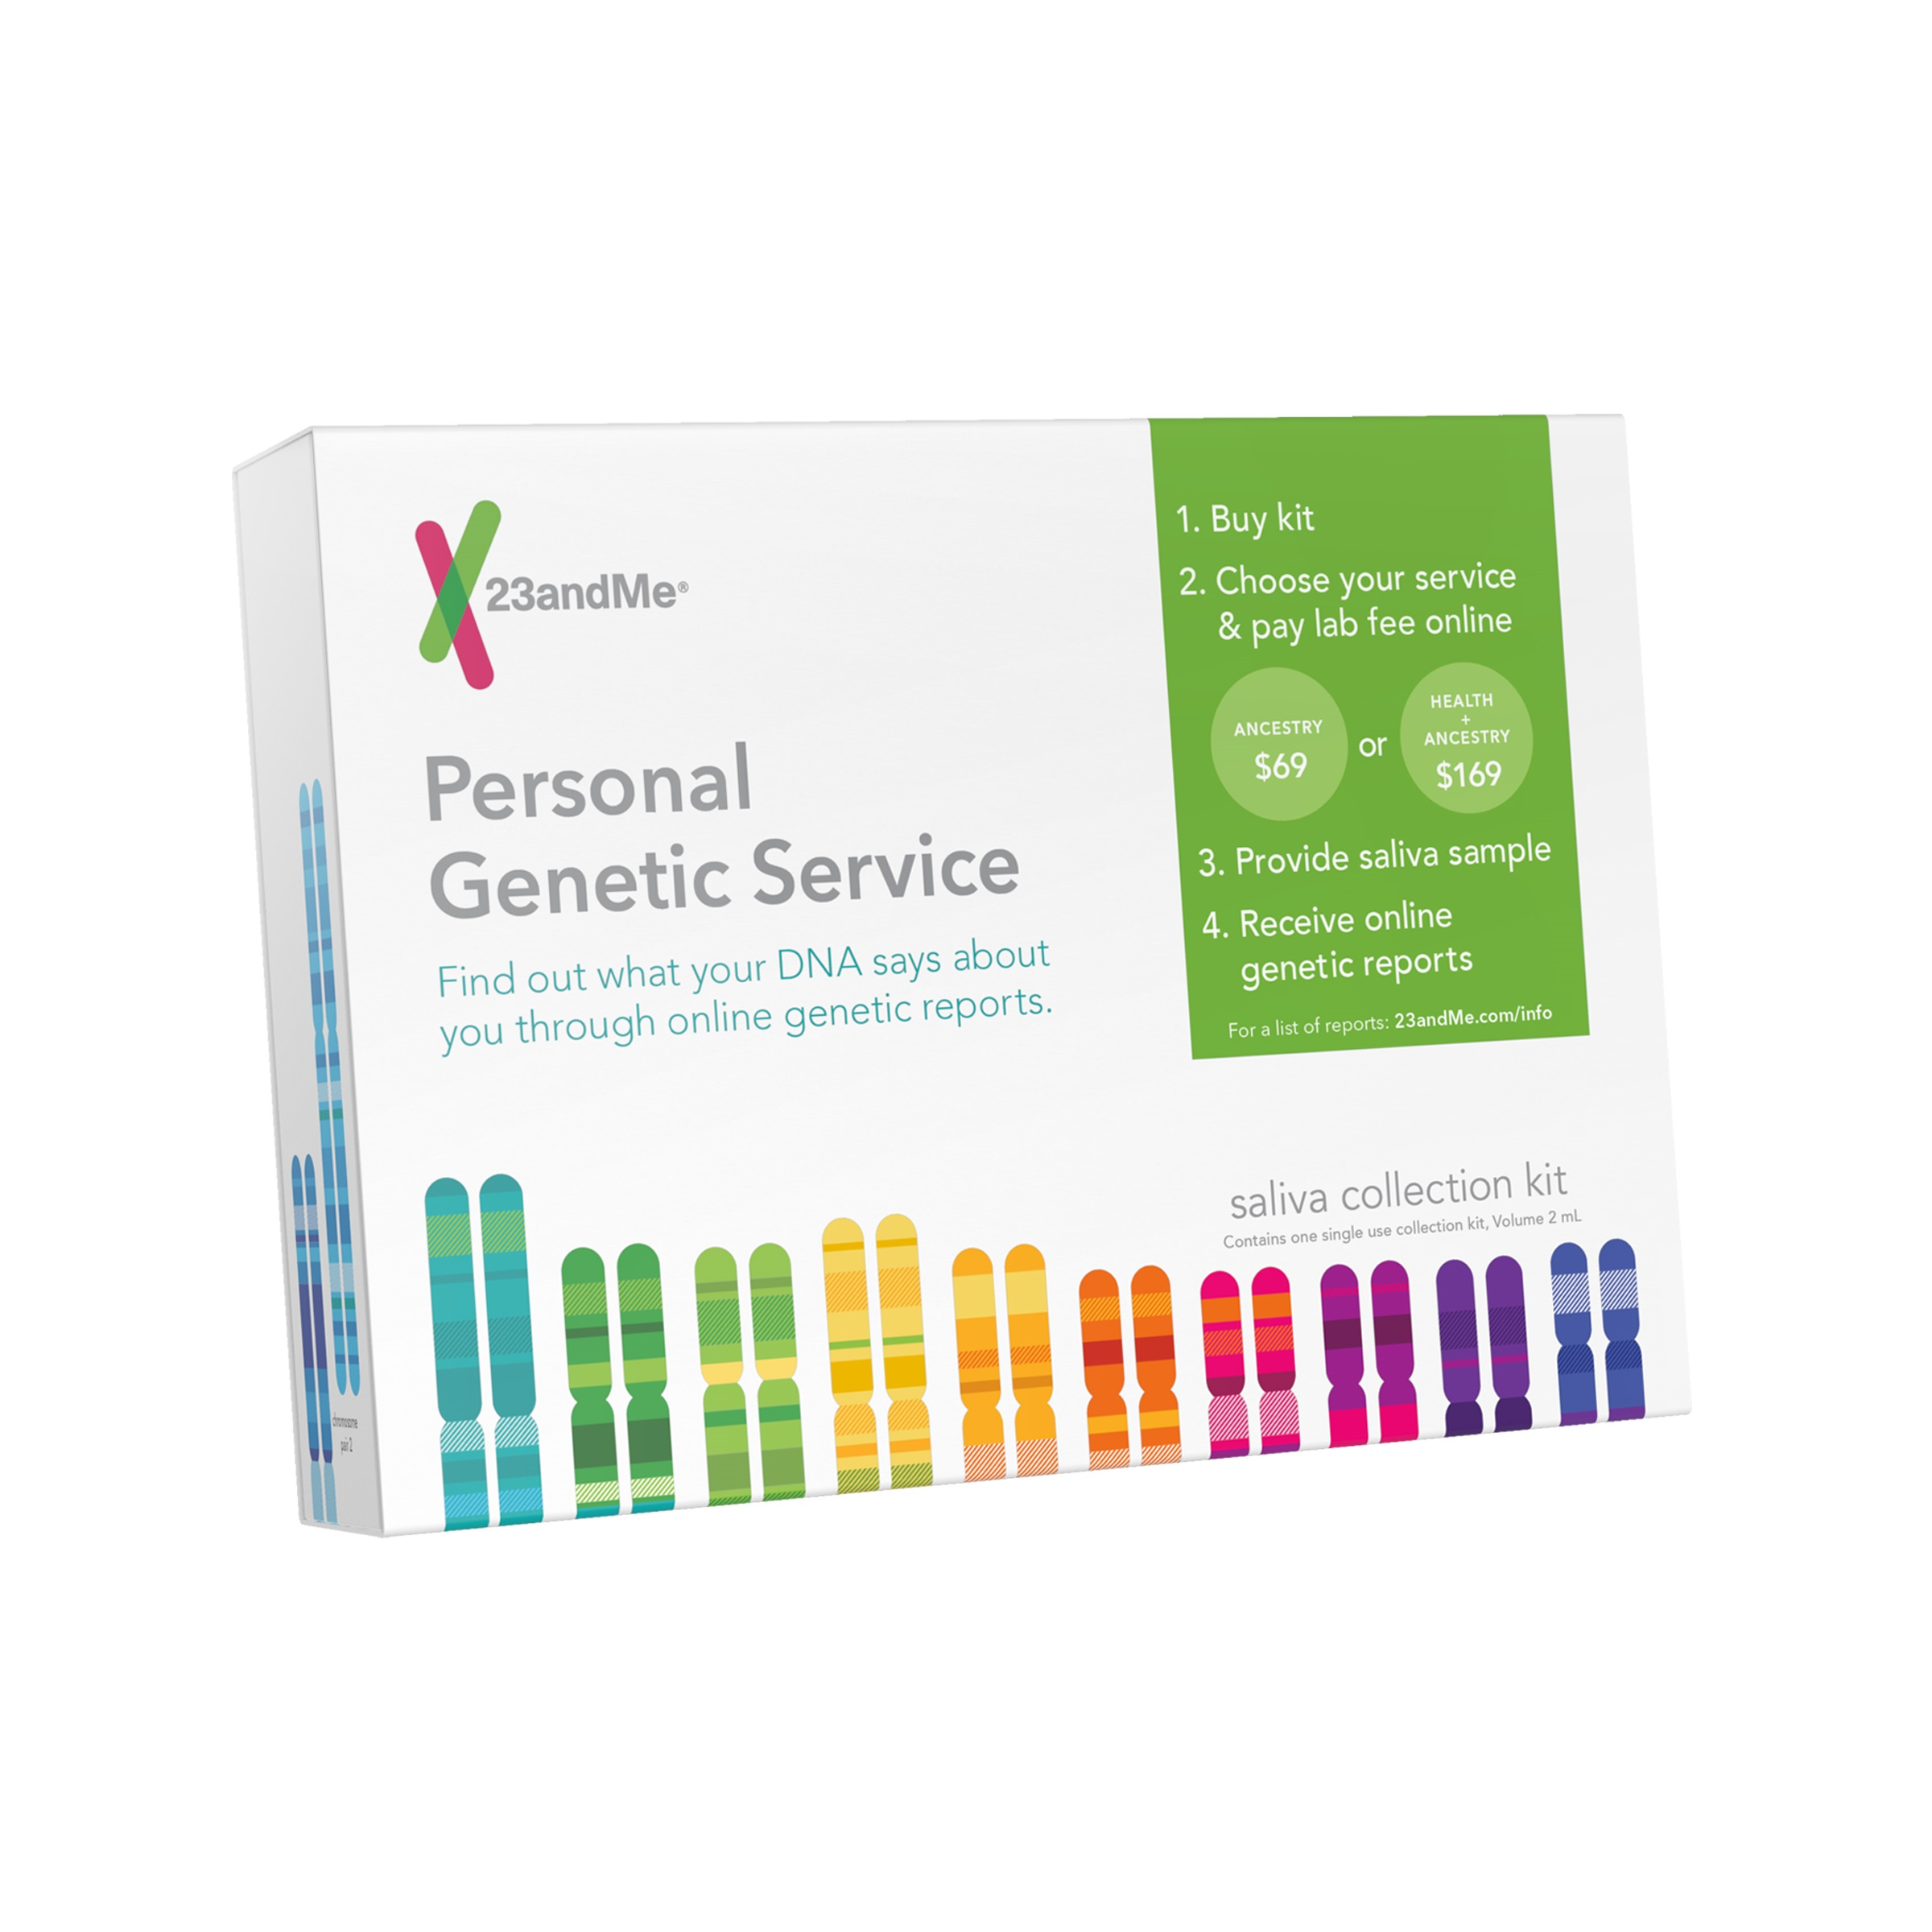 Image of 23andMe Personal Genetic Service